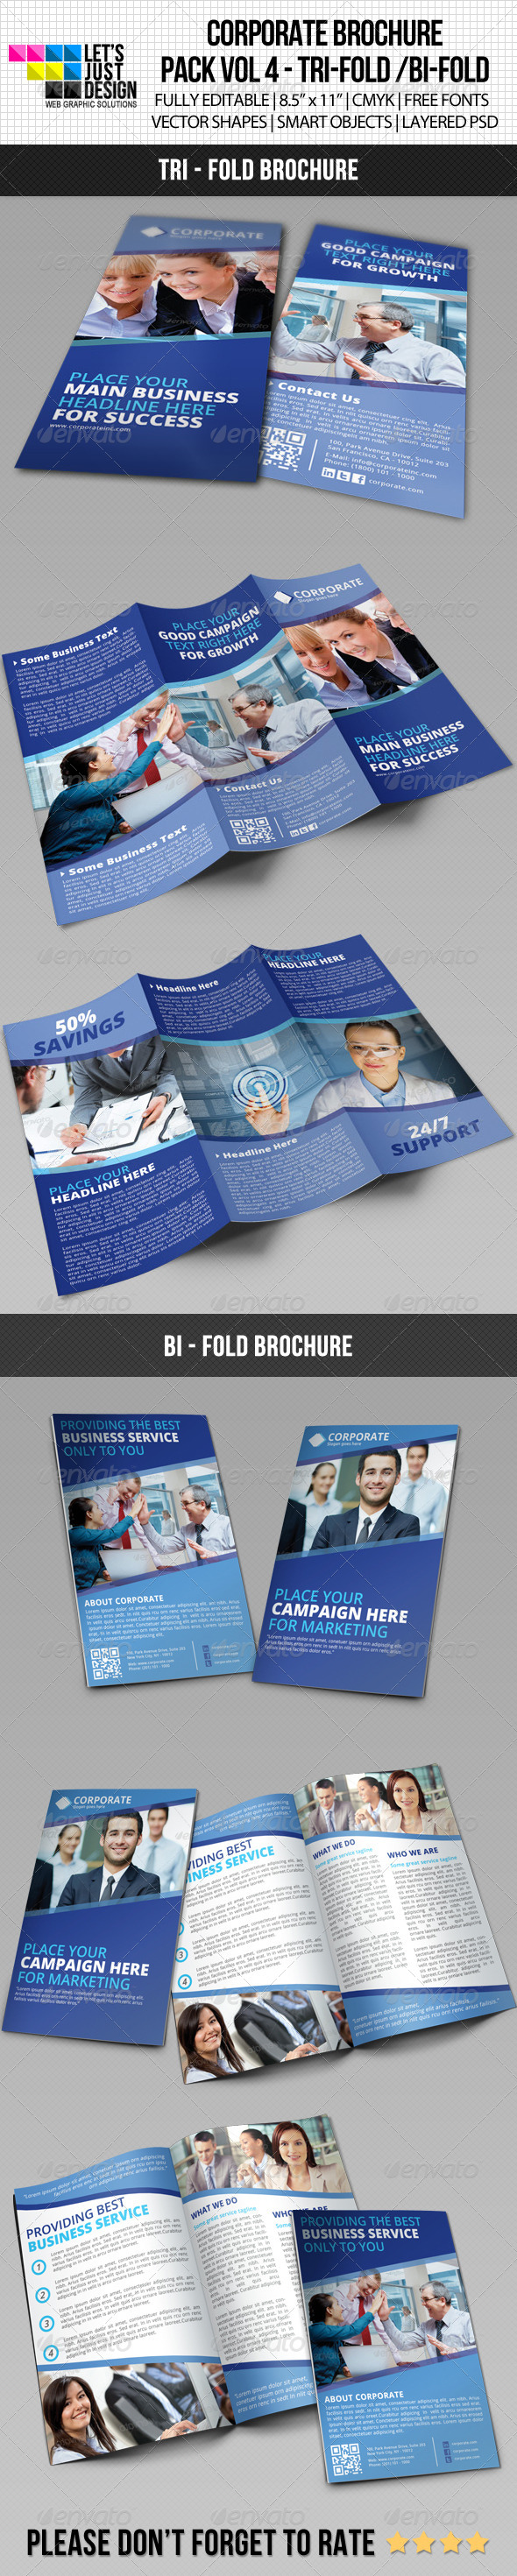 GraphicRiver Creative Corporate Brochure Pack Vol 4 5993530